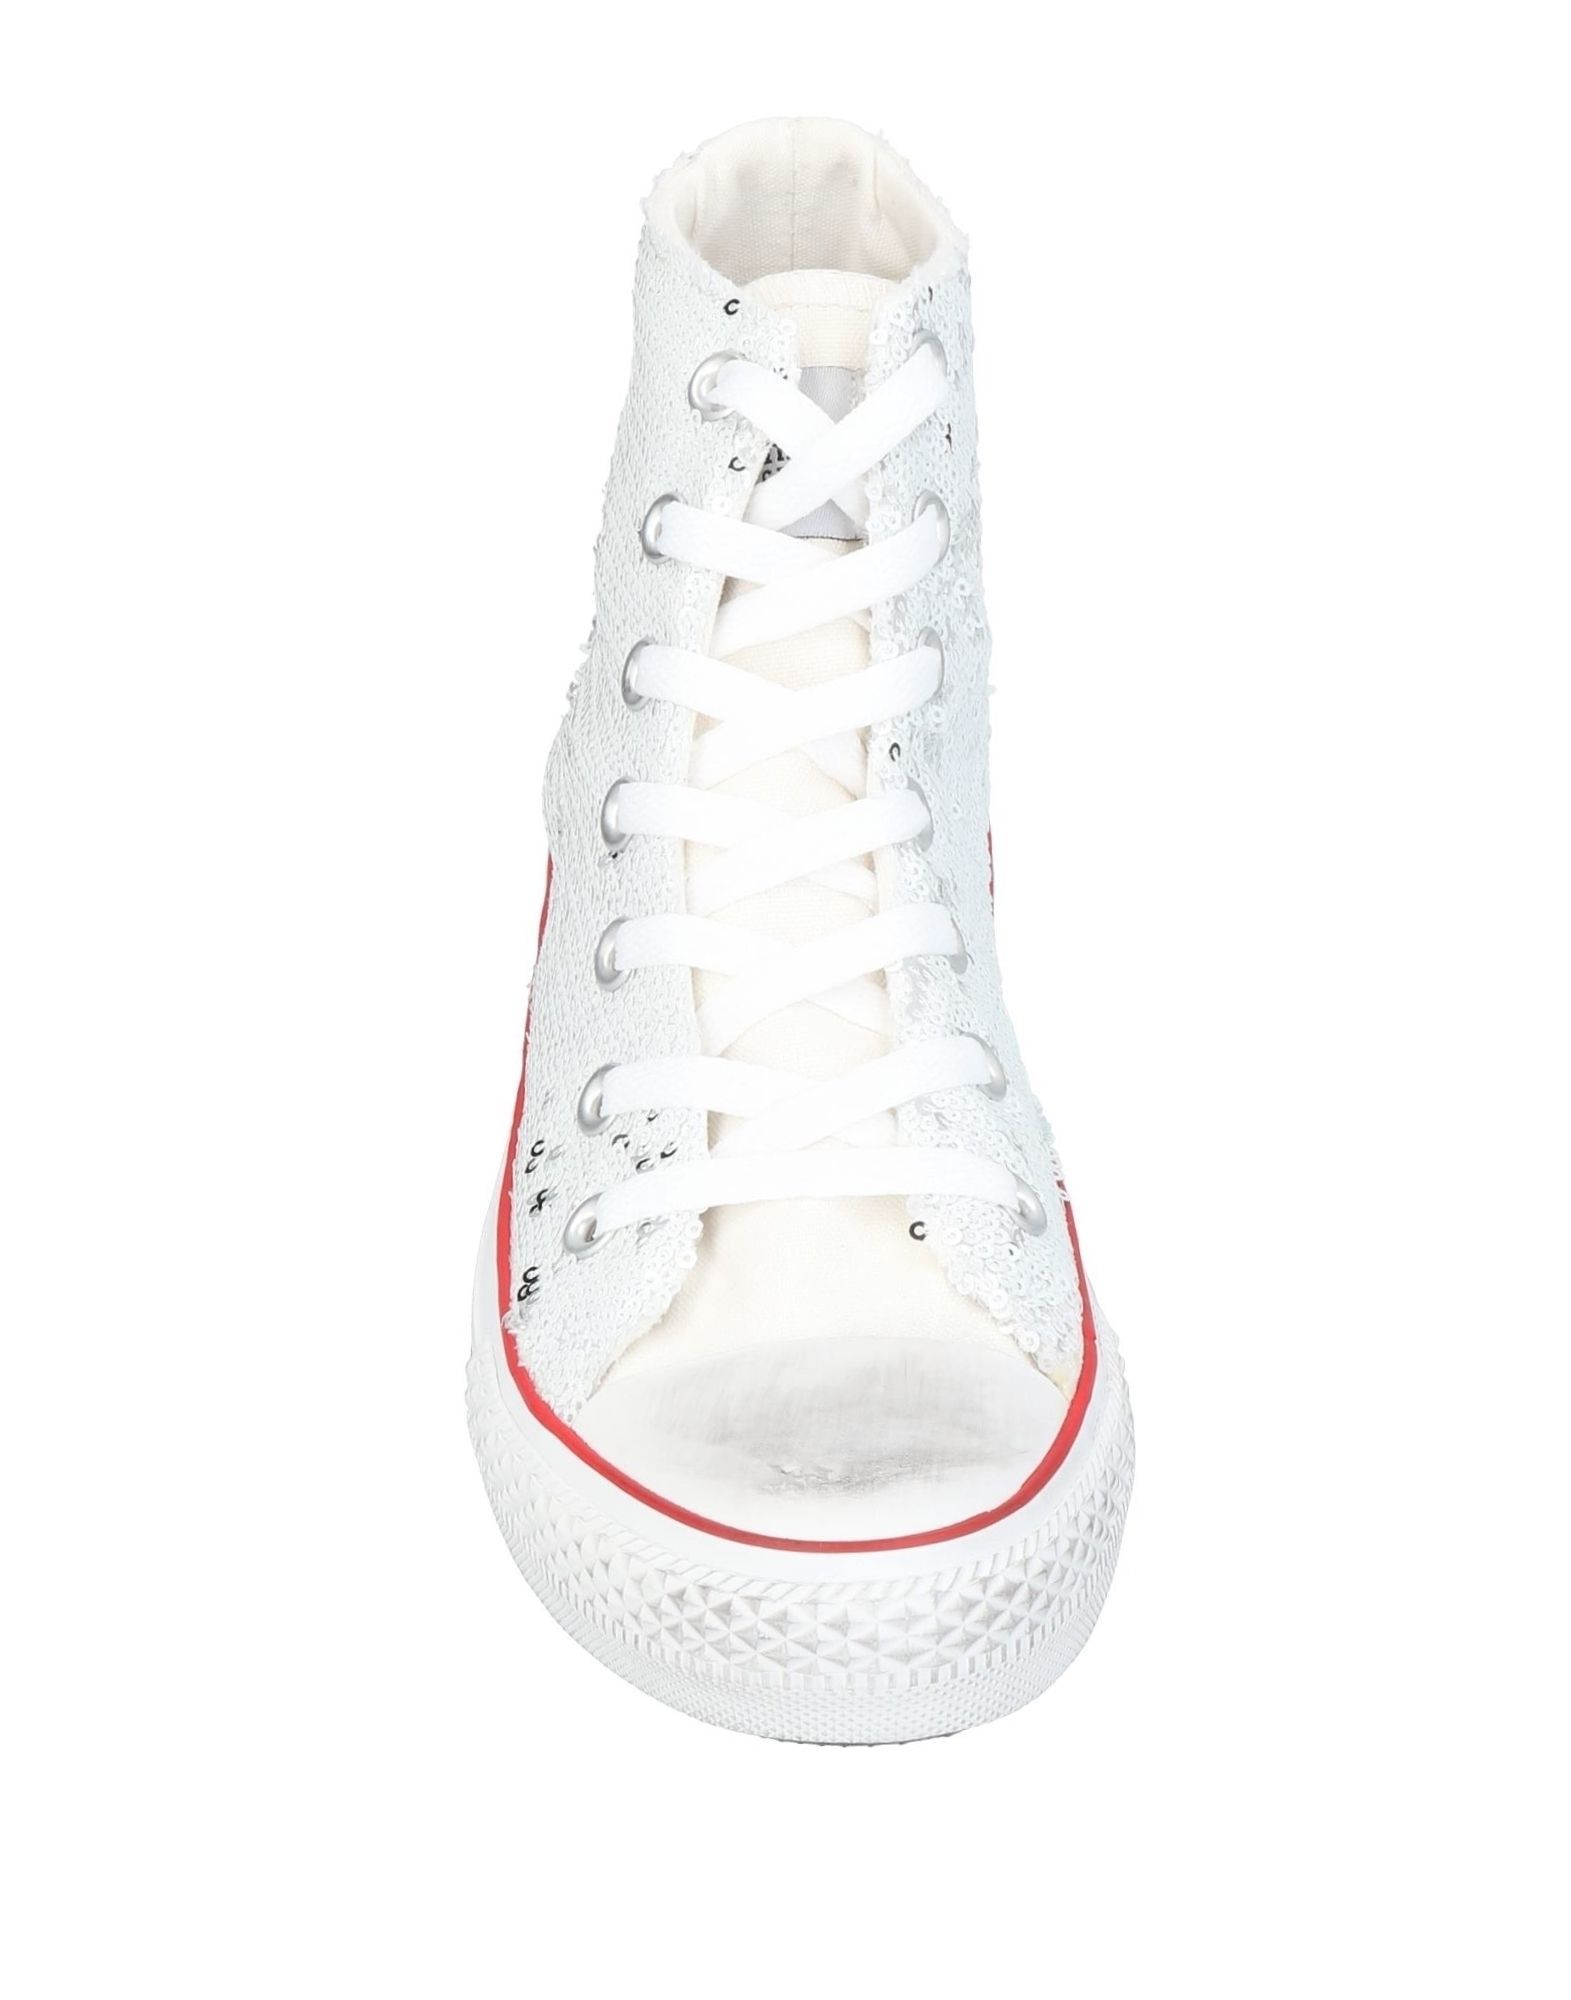 Primadonna White High Top Sneakers